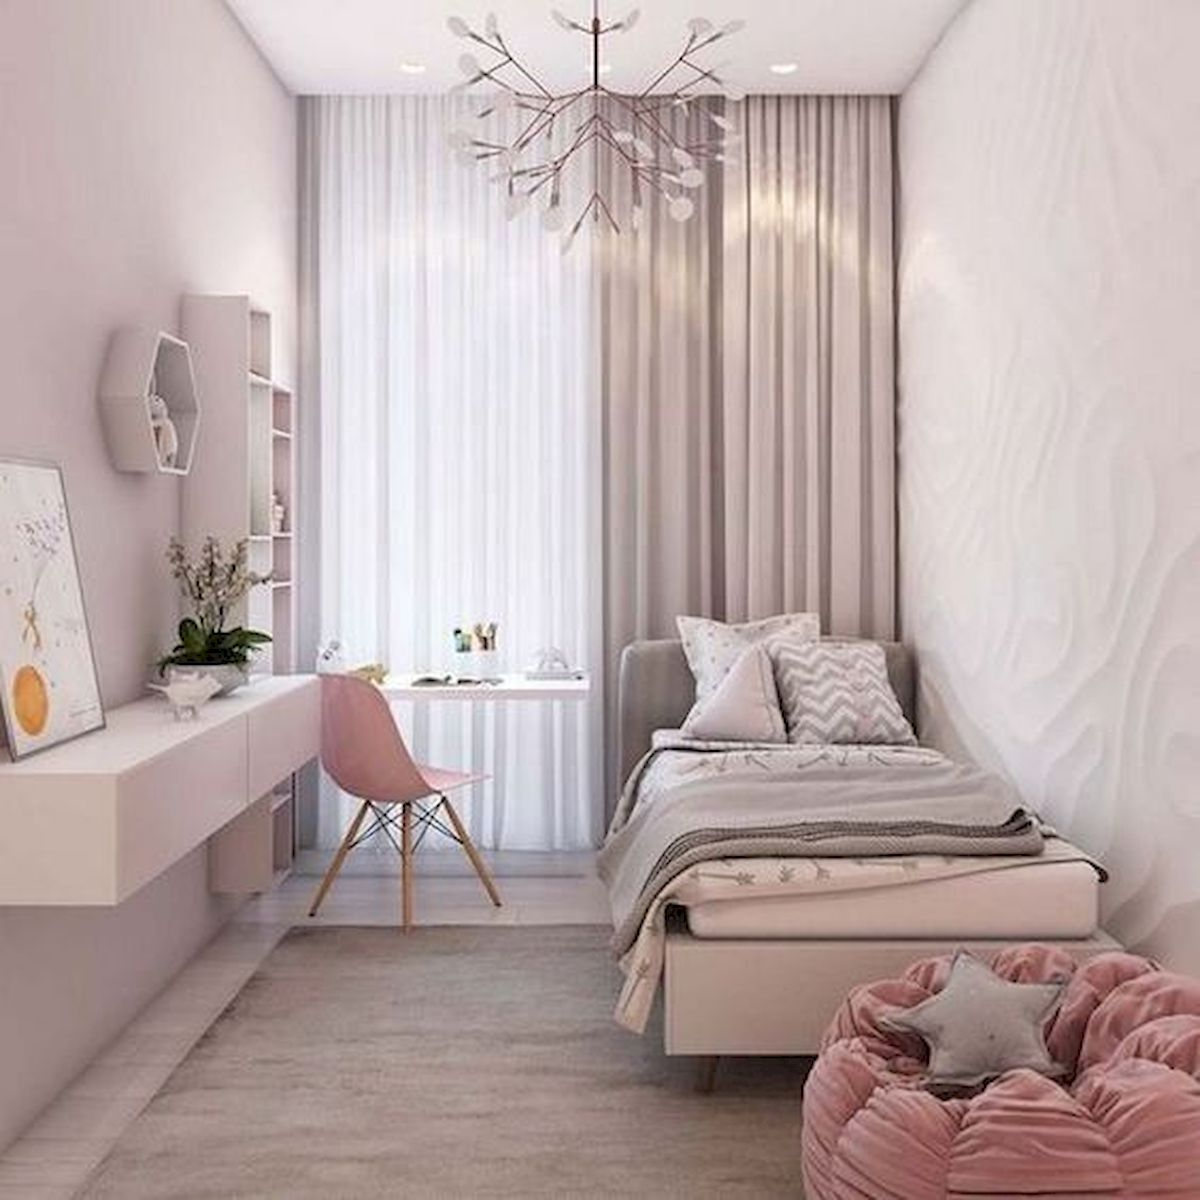 45 Awesome Small Apartment Bedroom Design And Decor Ideas (3)